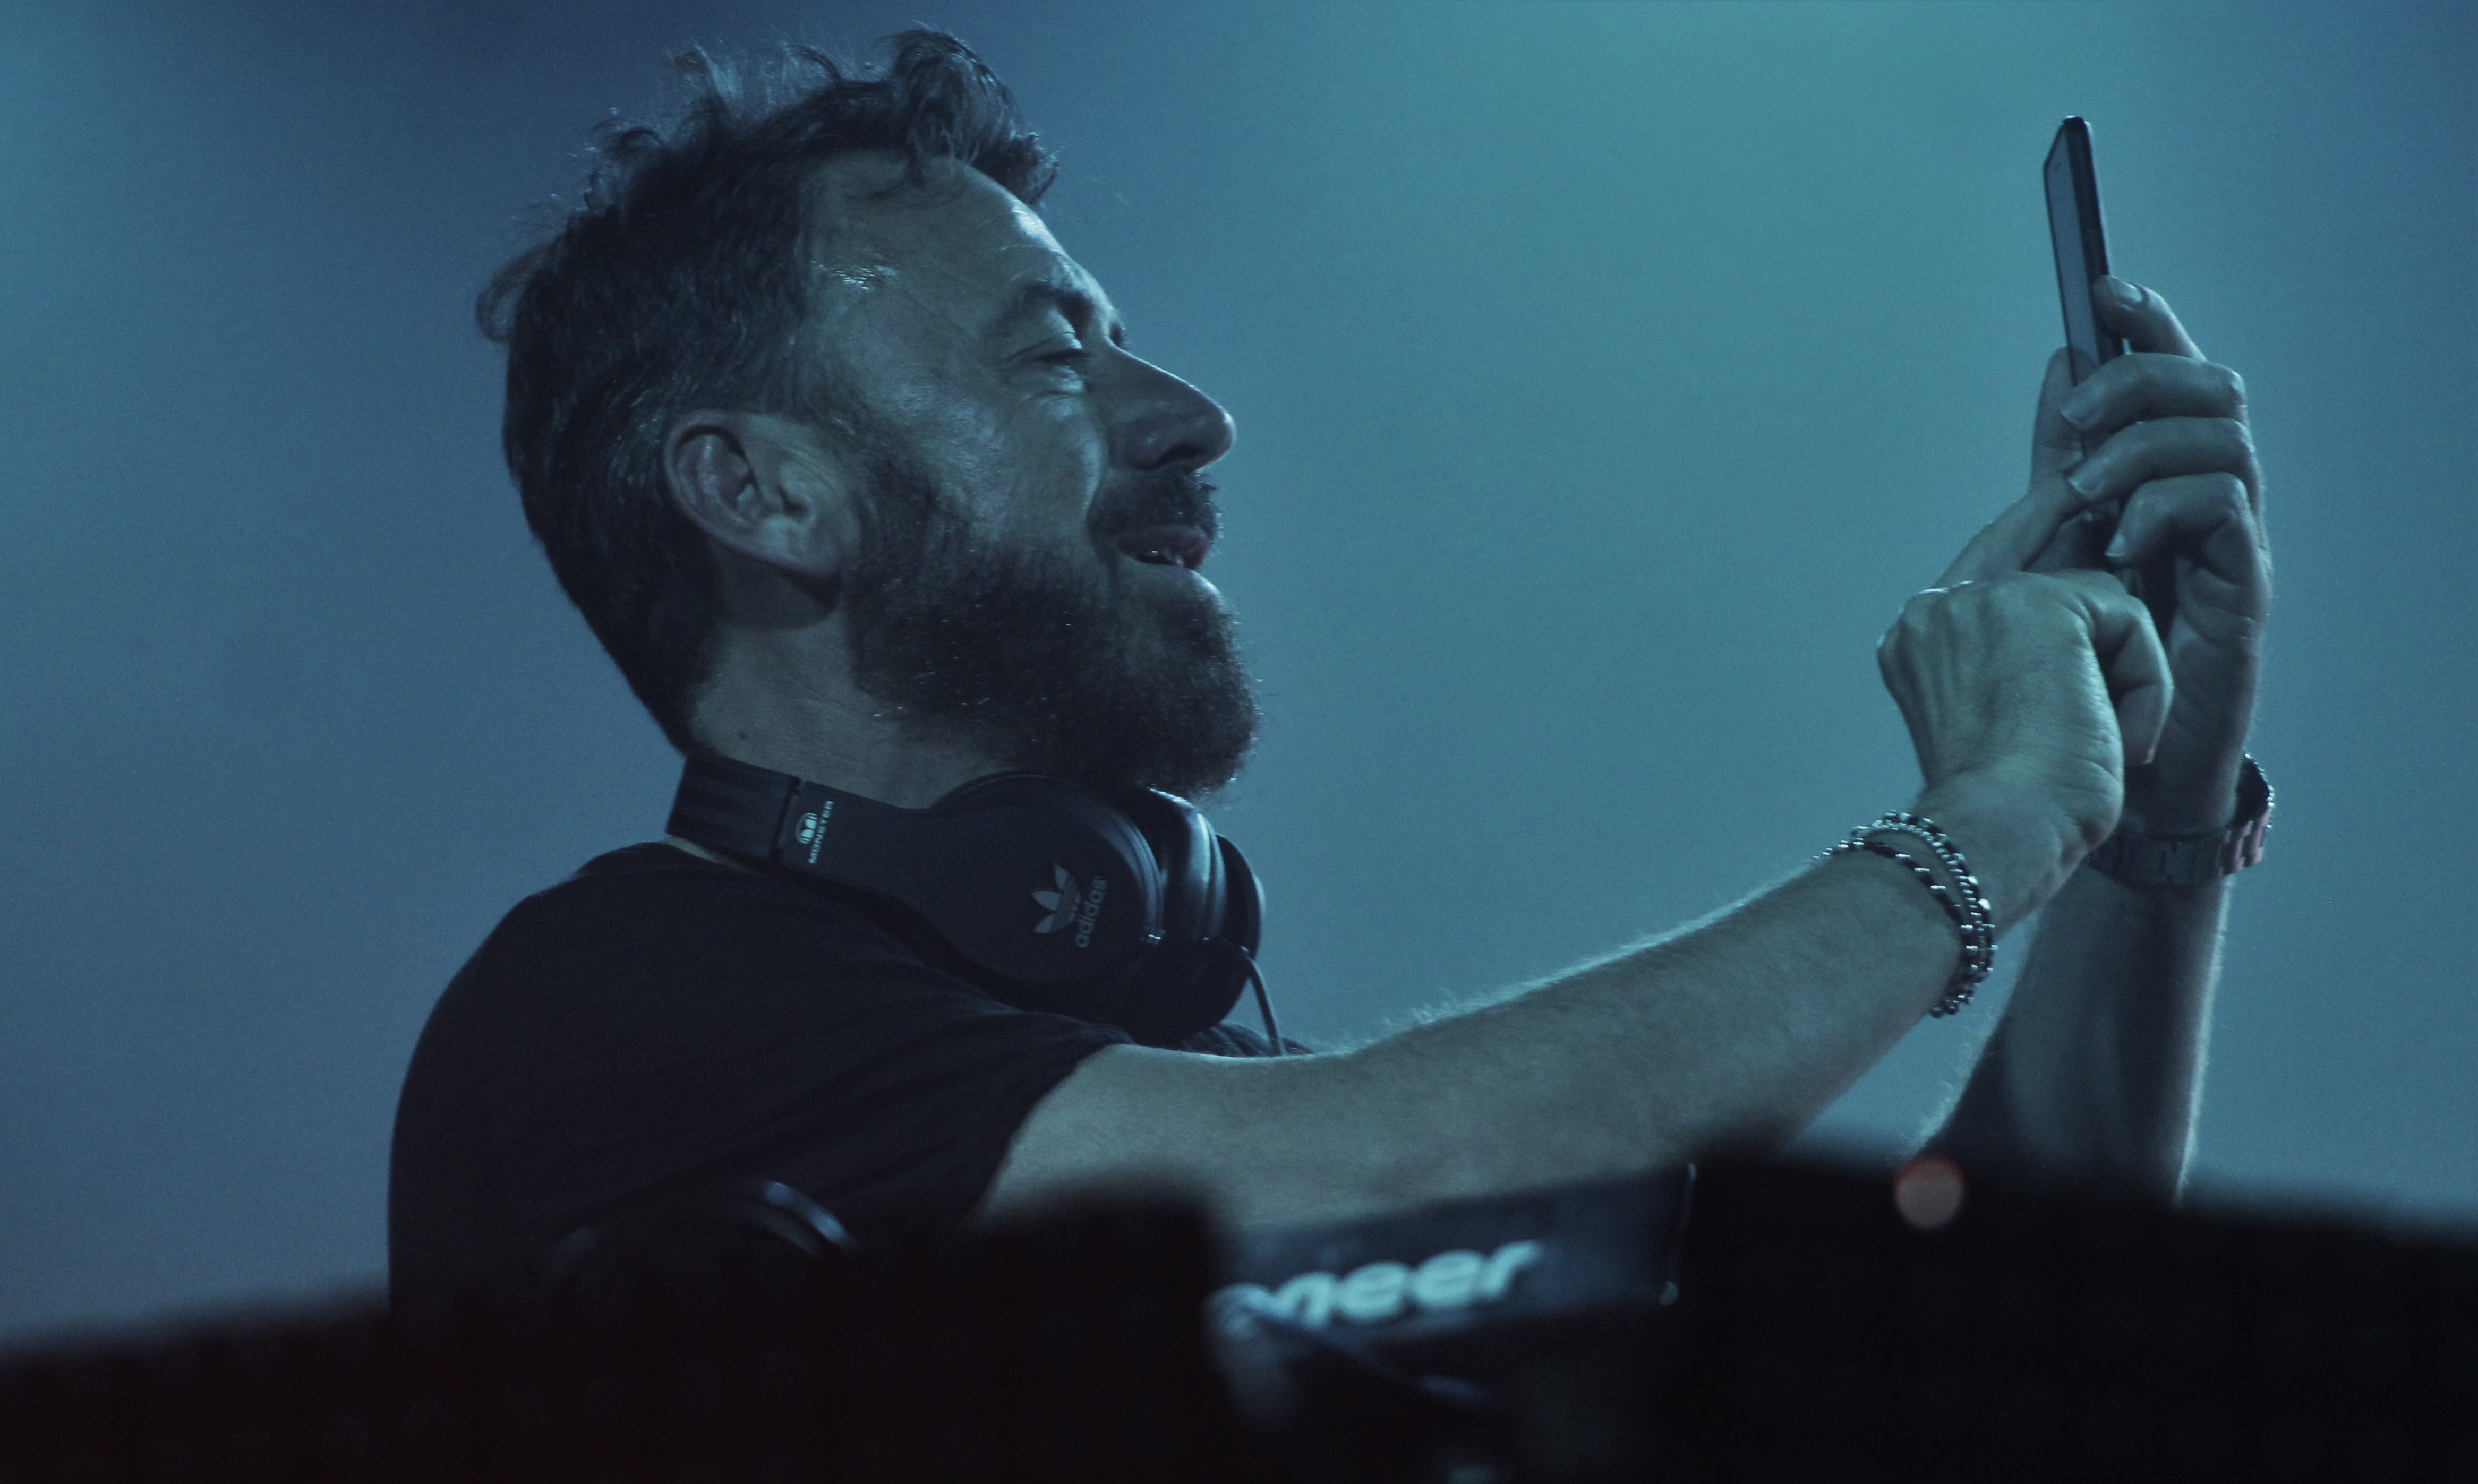 Benny Benassi Wallpapers Images Photos Pictures Backgrounds 4666x2795